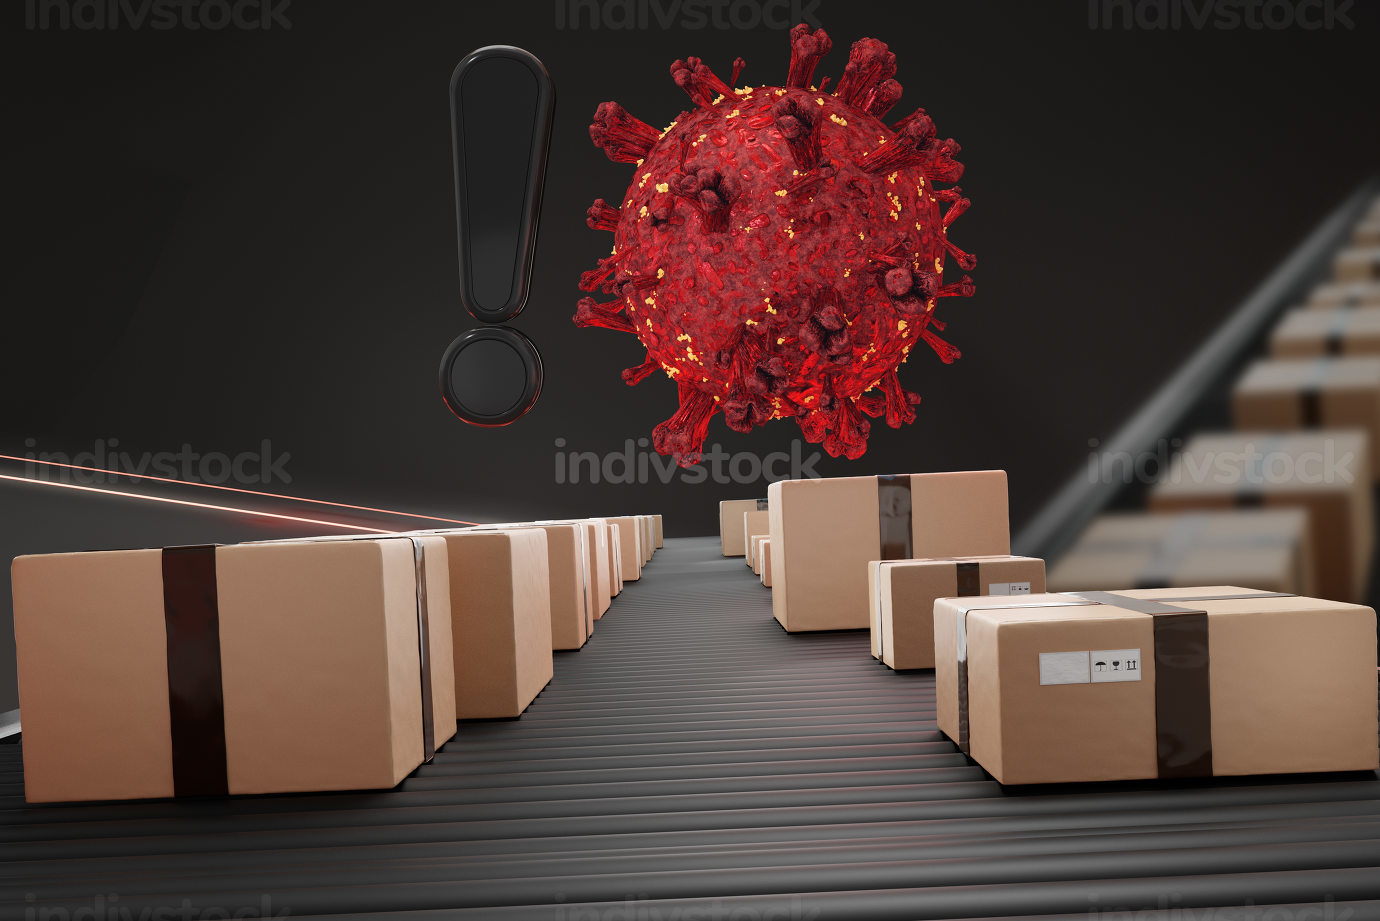 exclamation mark and red virus cell. parcels packages on conveyo